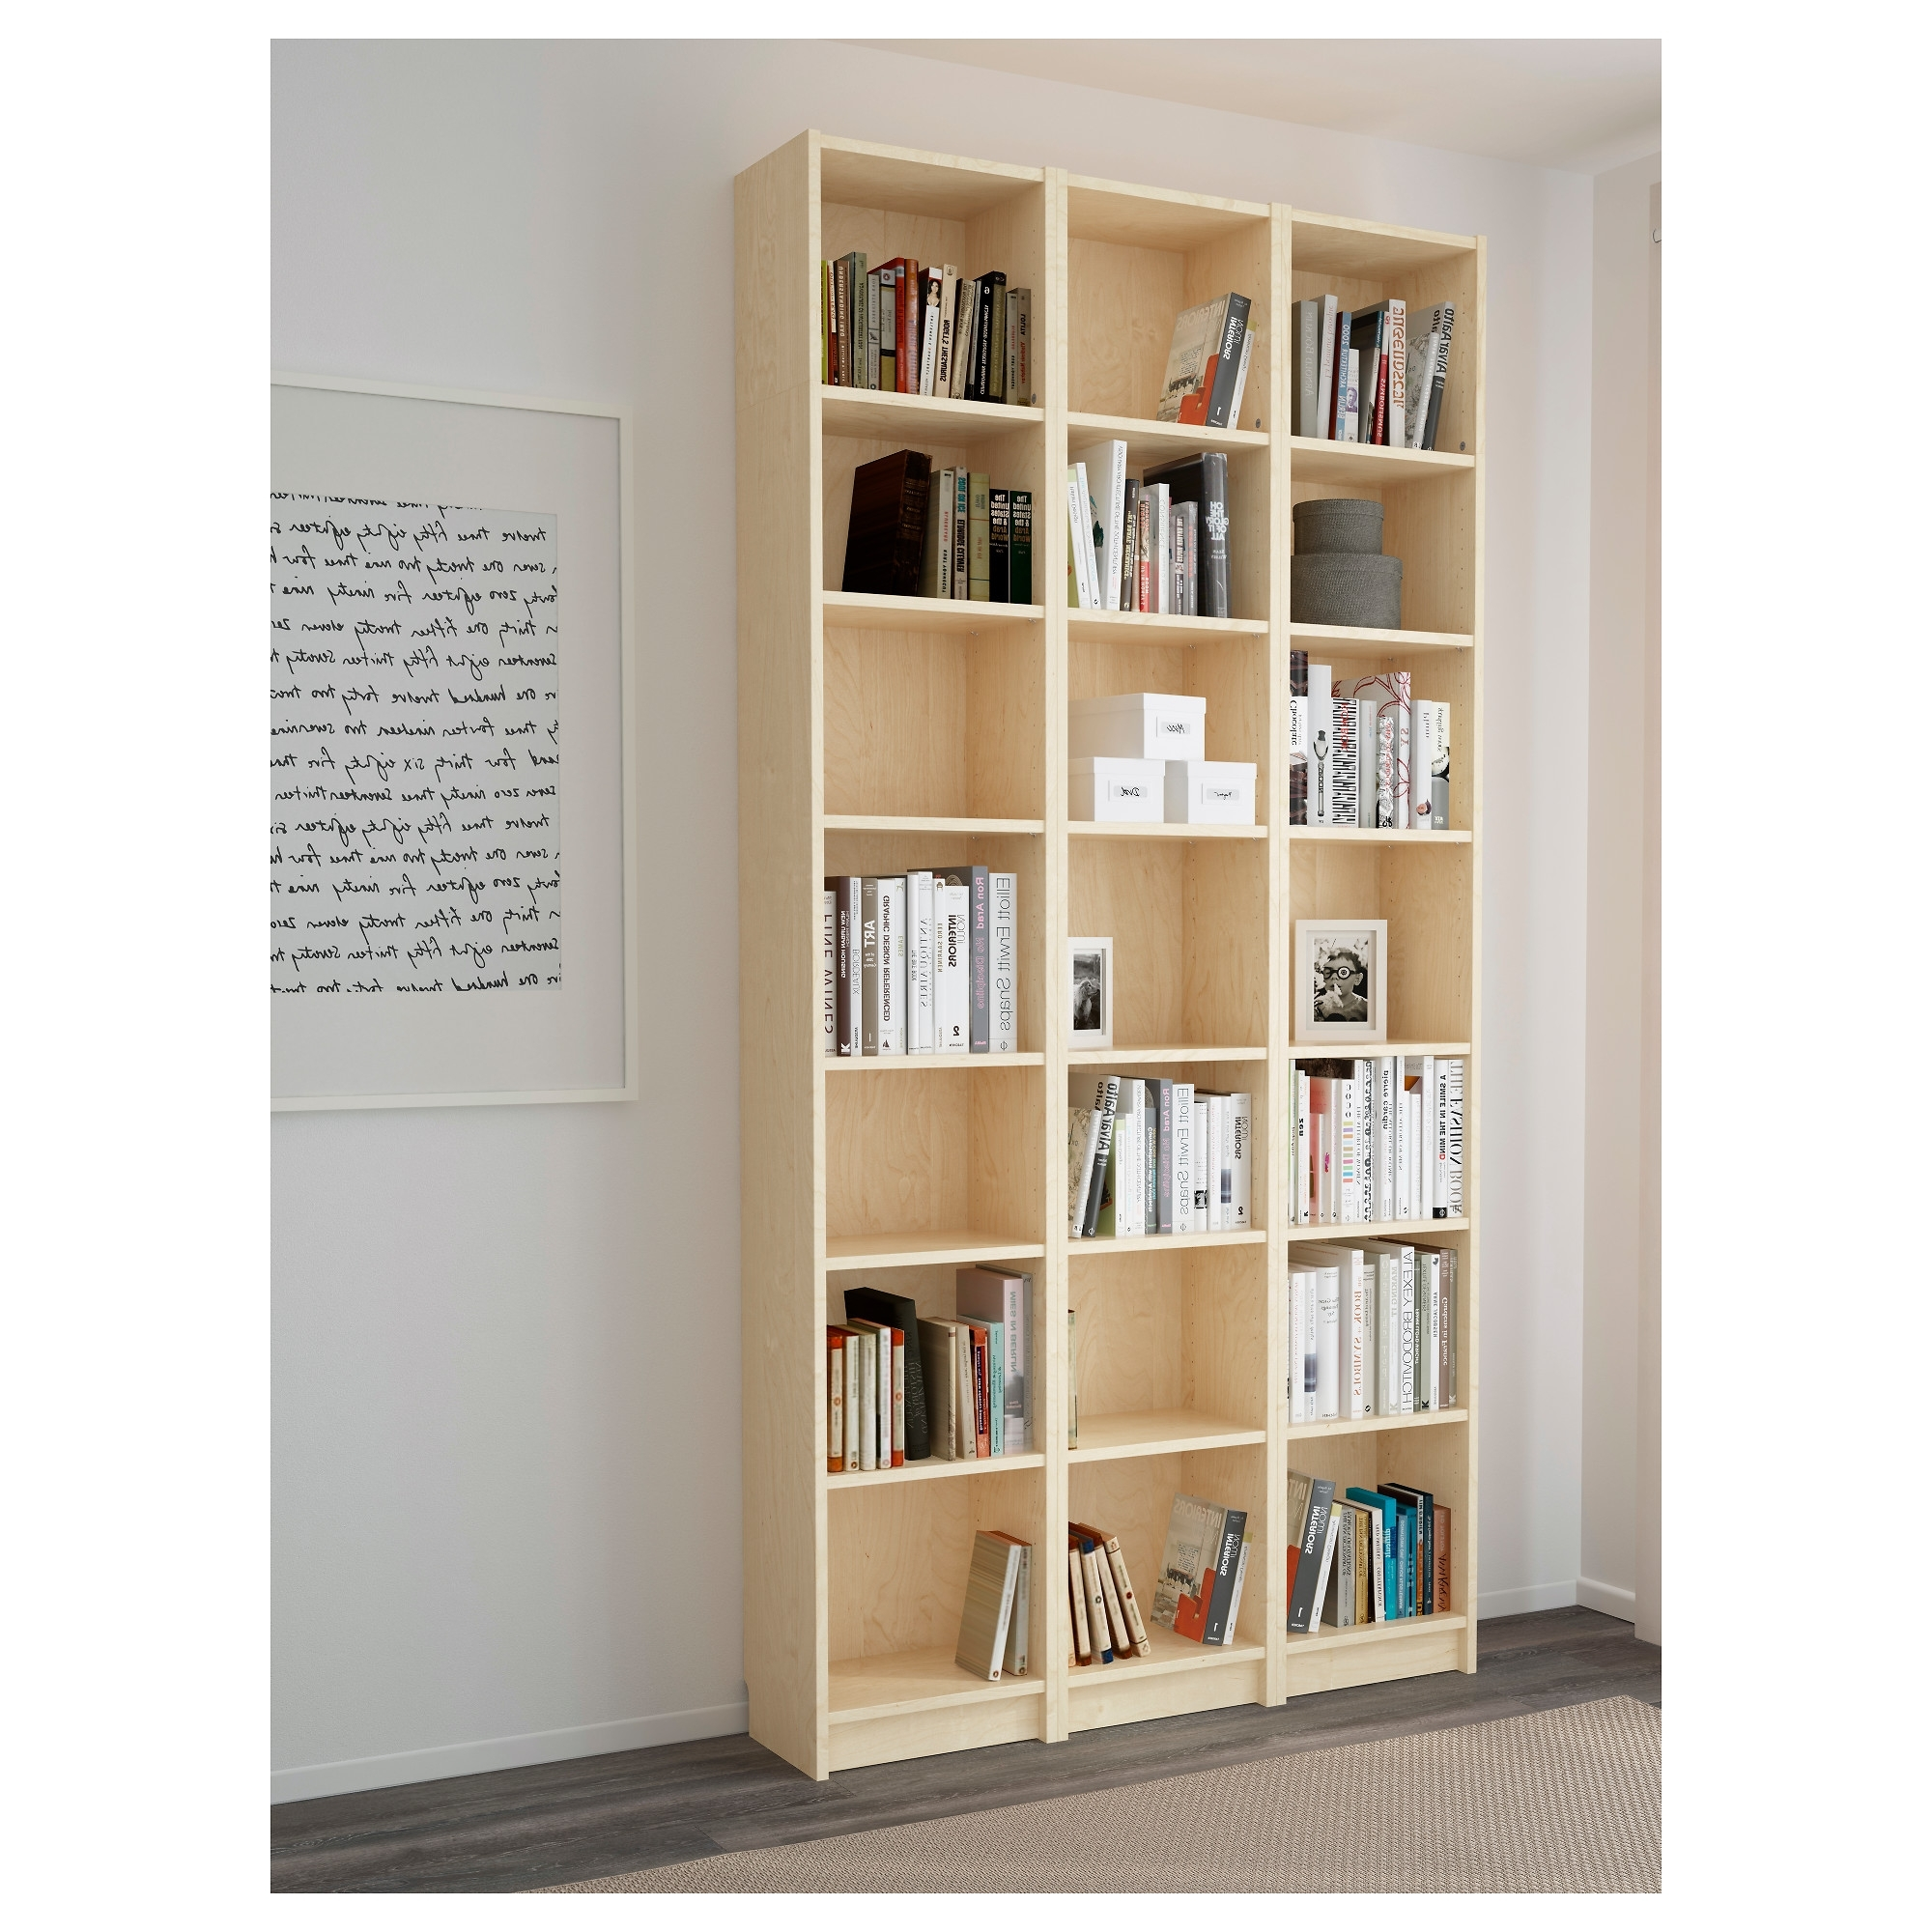 Widely Used Billy Bookcases Intended For Billy Bookcase Birch Veneer 120x237x28 Cm – Ikea (View 13 of 15)